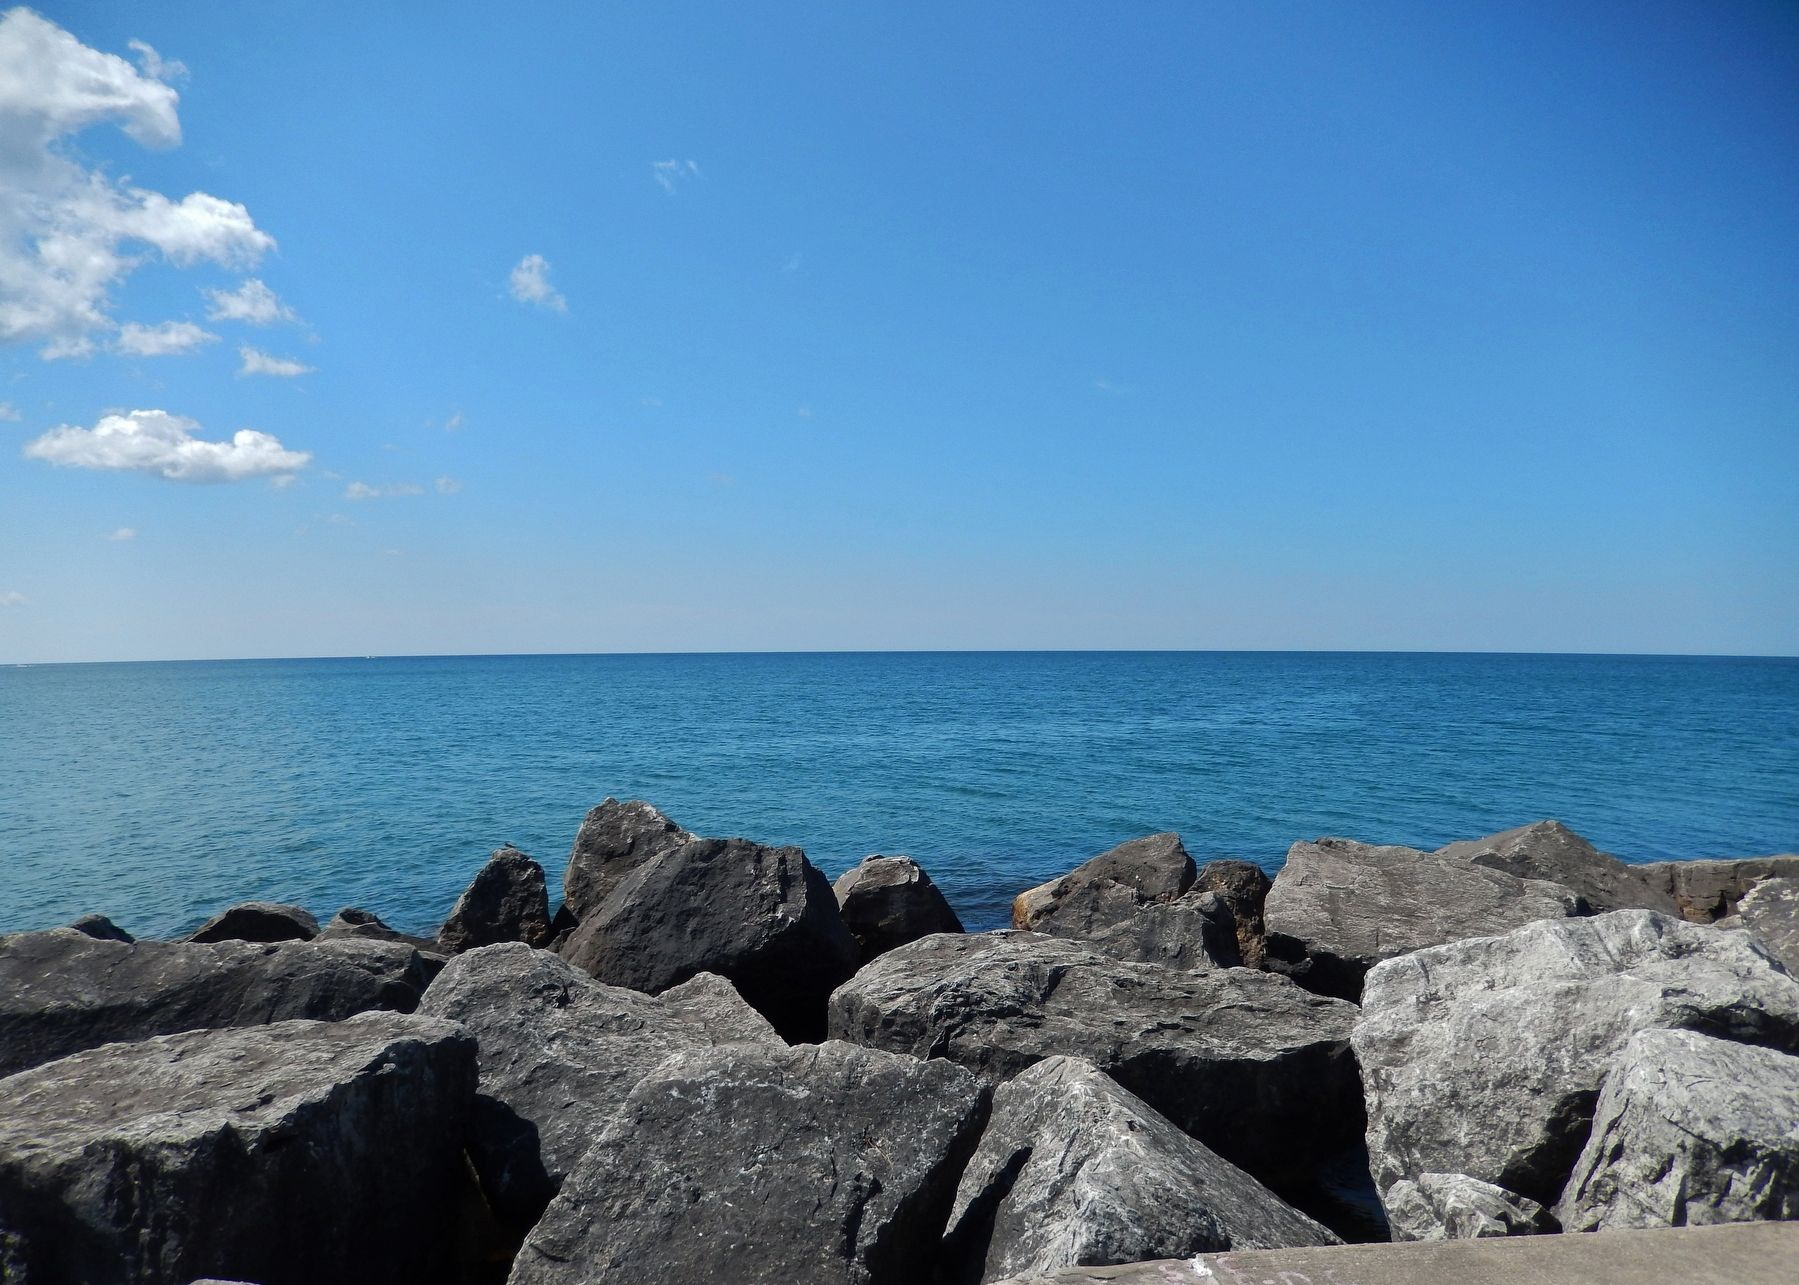 Muskegon Fishing Reef (<i>view southwest into Lake Michigan - the direction of the marker arrow</i>) image. Click for full size.